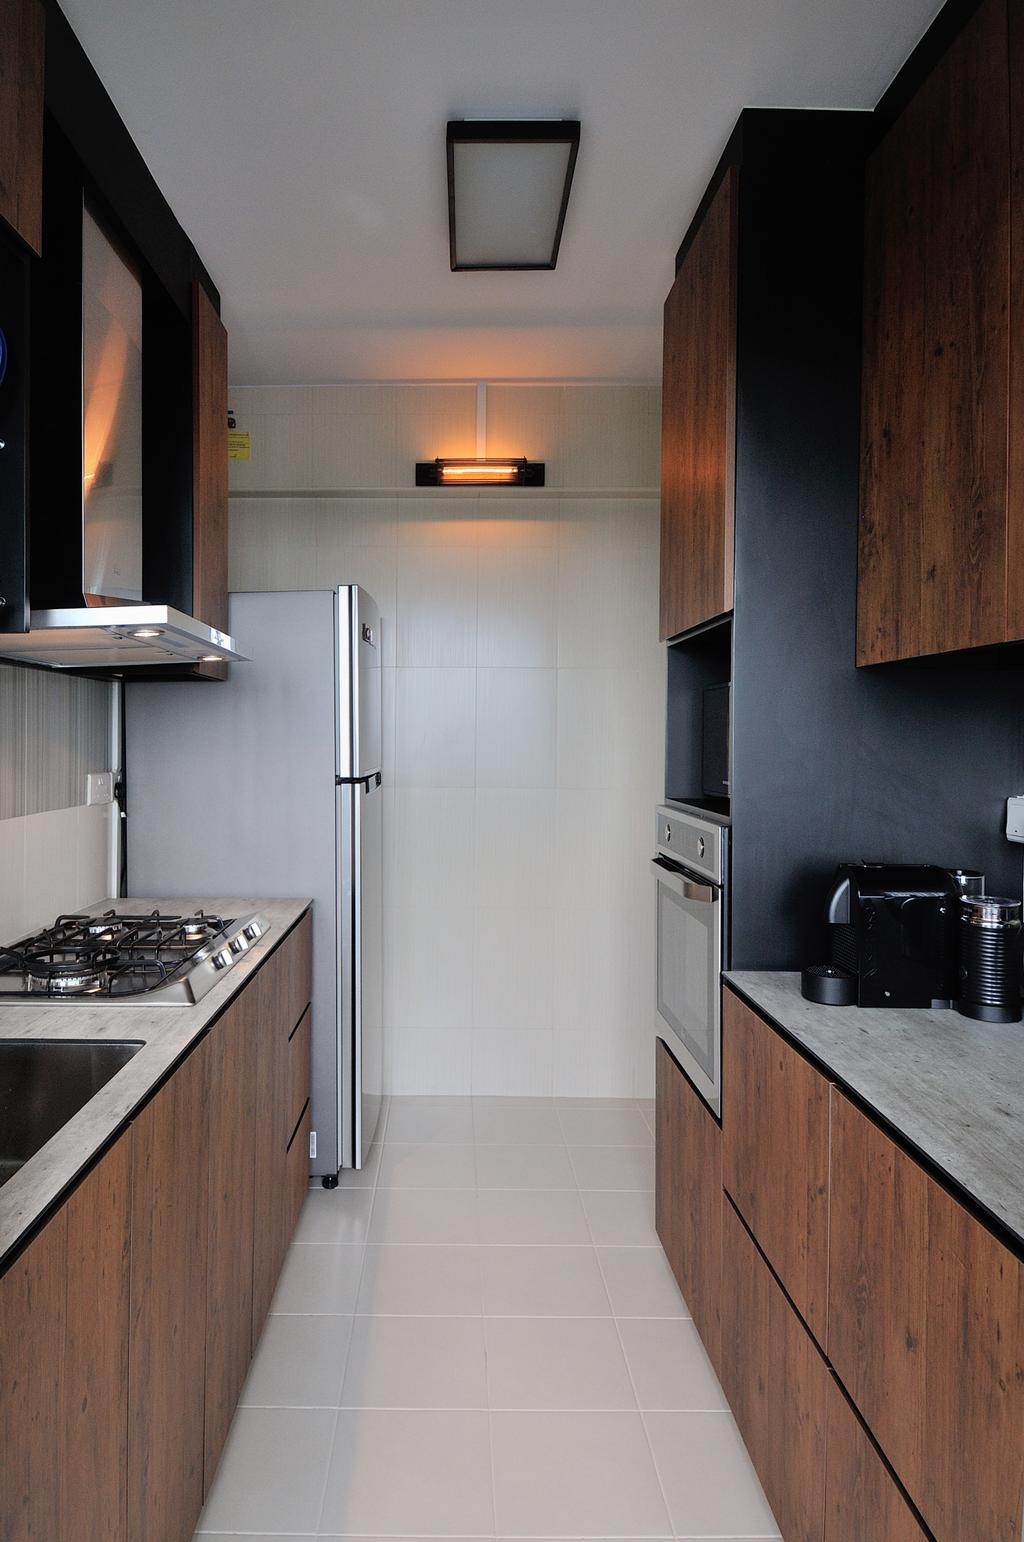 Industrial, HDB, Kitchen, 57 Teban View, Interior Designer, Aart Boxx Interior, Scandinavian, Modern Contemporary Kitchen, Cermaic Tiles, Wooden Kitchen Cupboard, Wooden Kitchen Cabinet, White Laminated Top, Ceiling Lights, Built In Oven, Indoors, Interior Design, Room